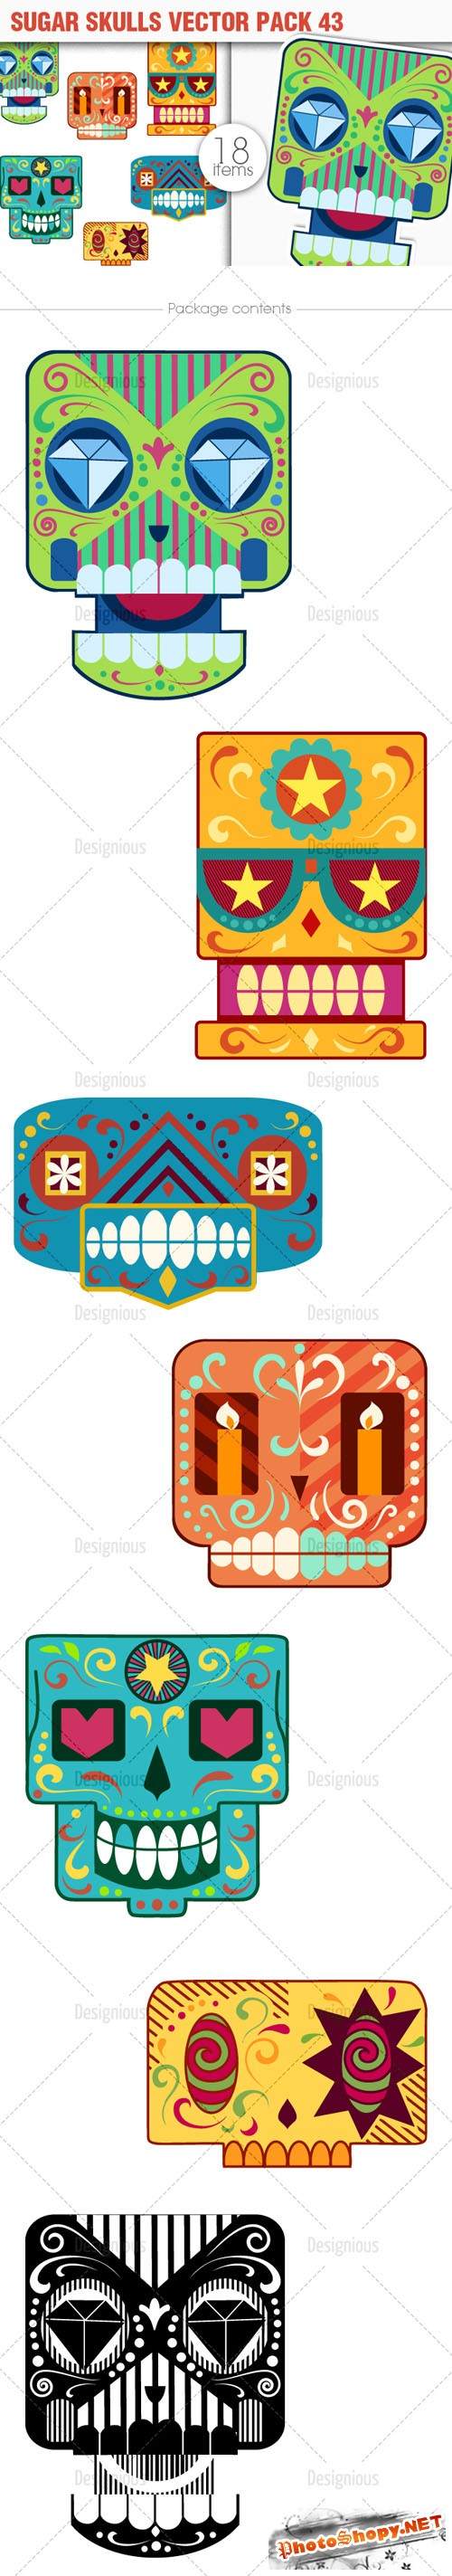 Sugar Skulls Vector Pack 43